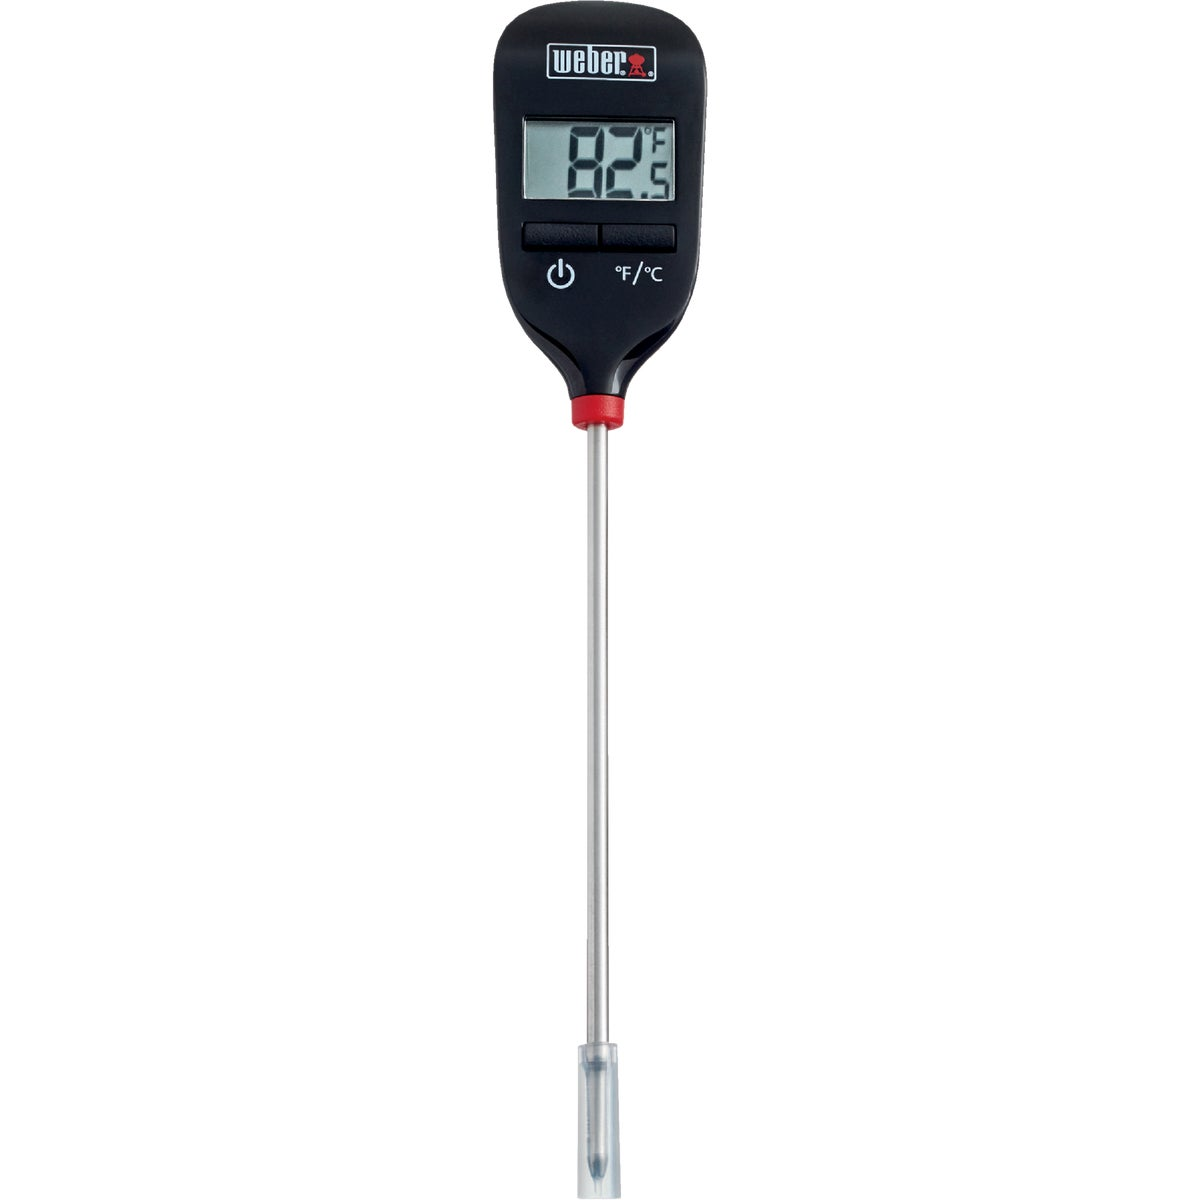 INSTANT READ THERMOMETER - 6492 by Weber